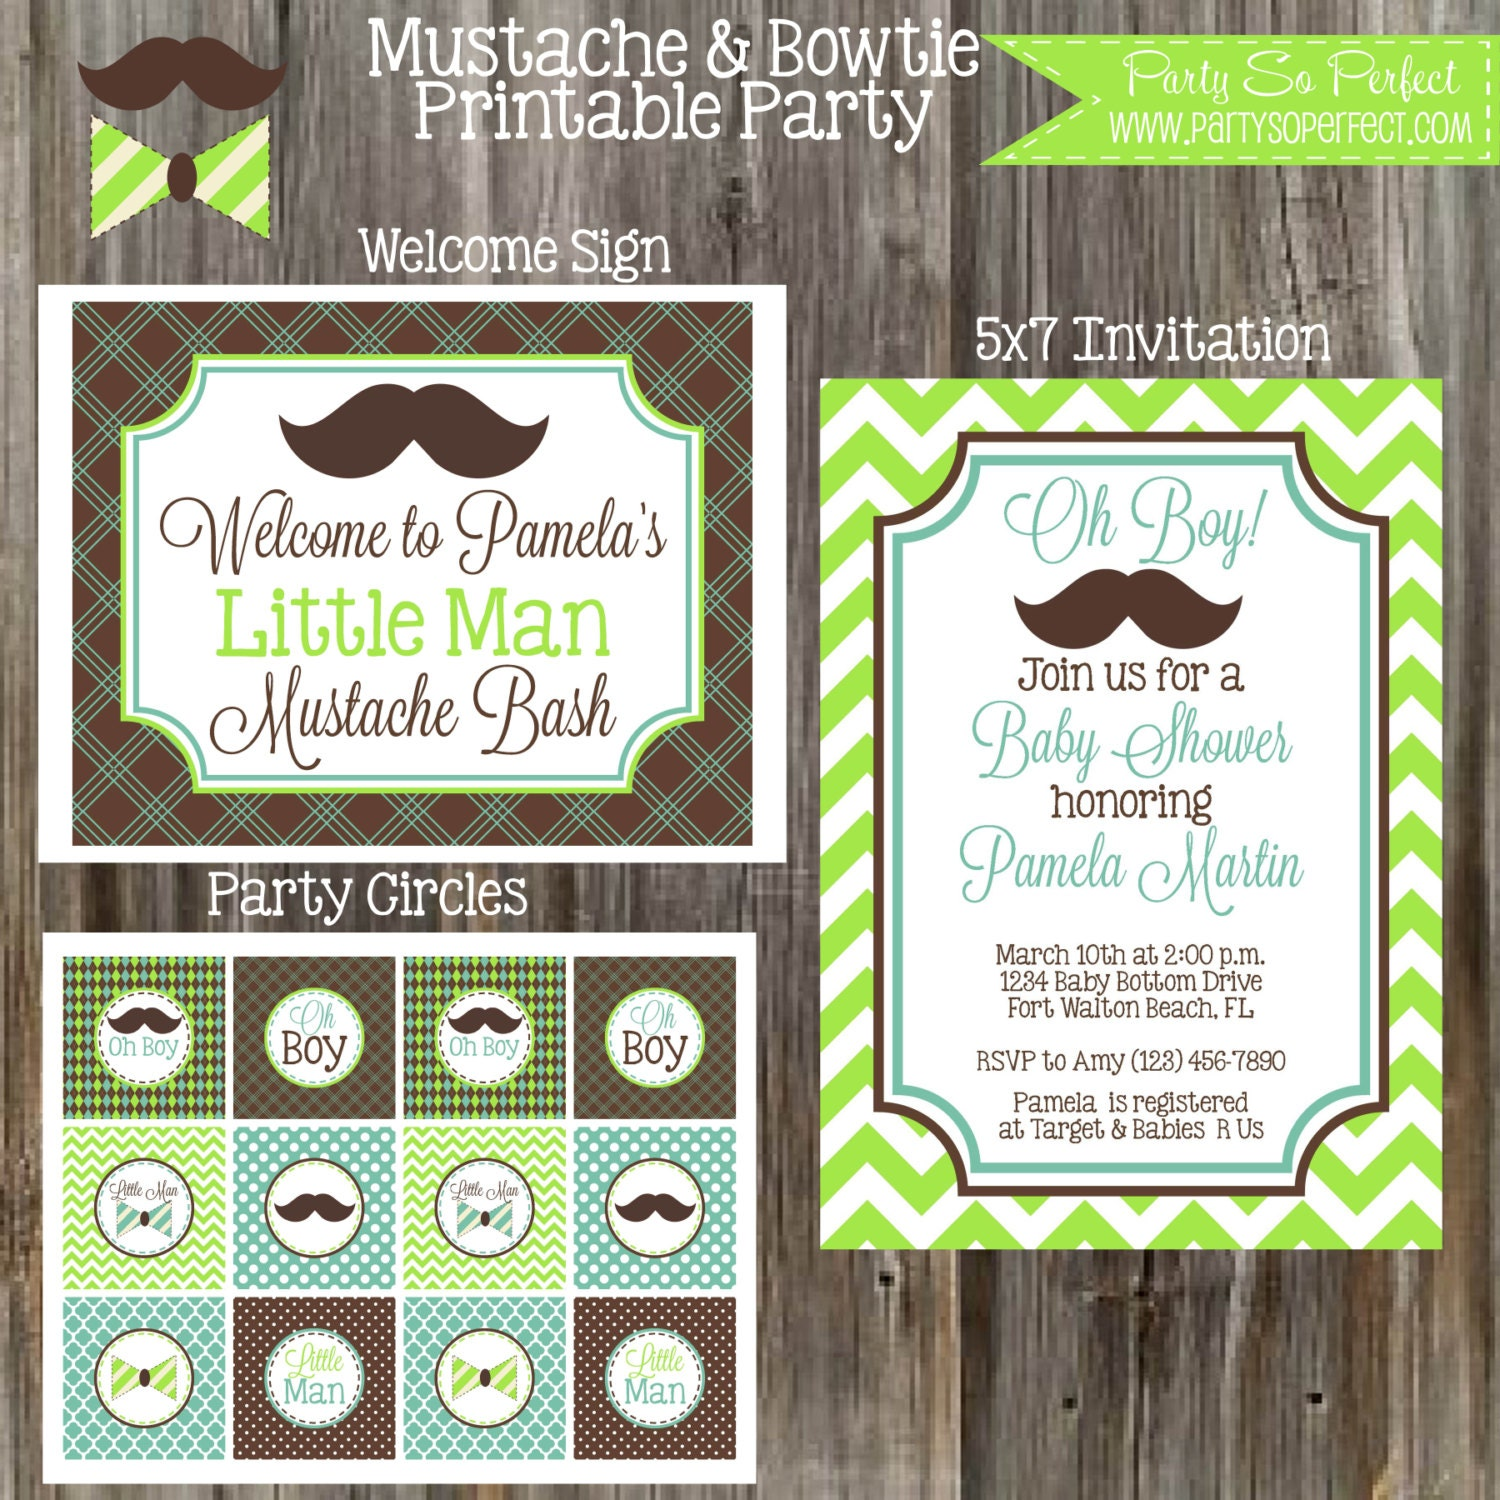 little man mustache bash baby shower package boy diy printable